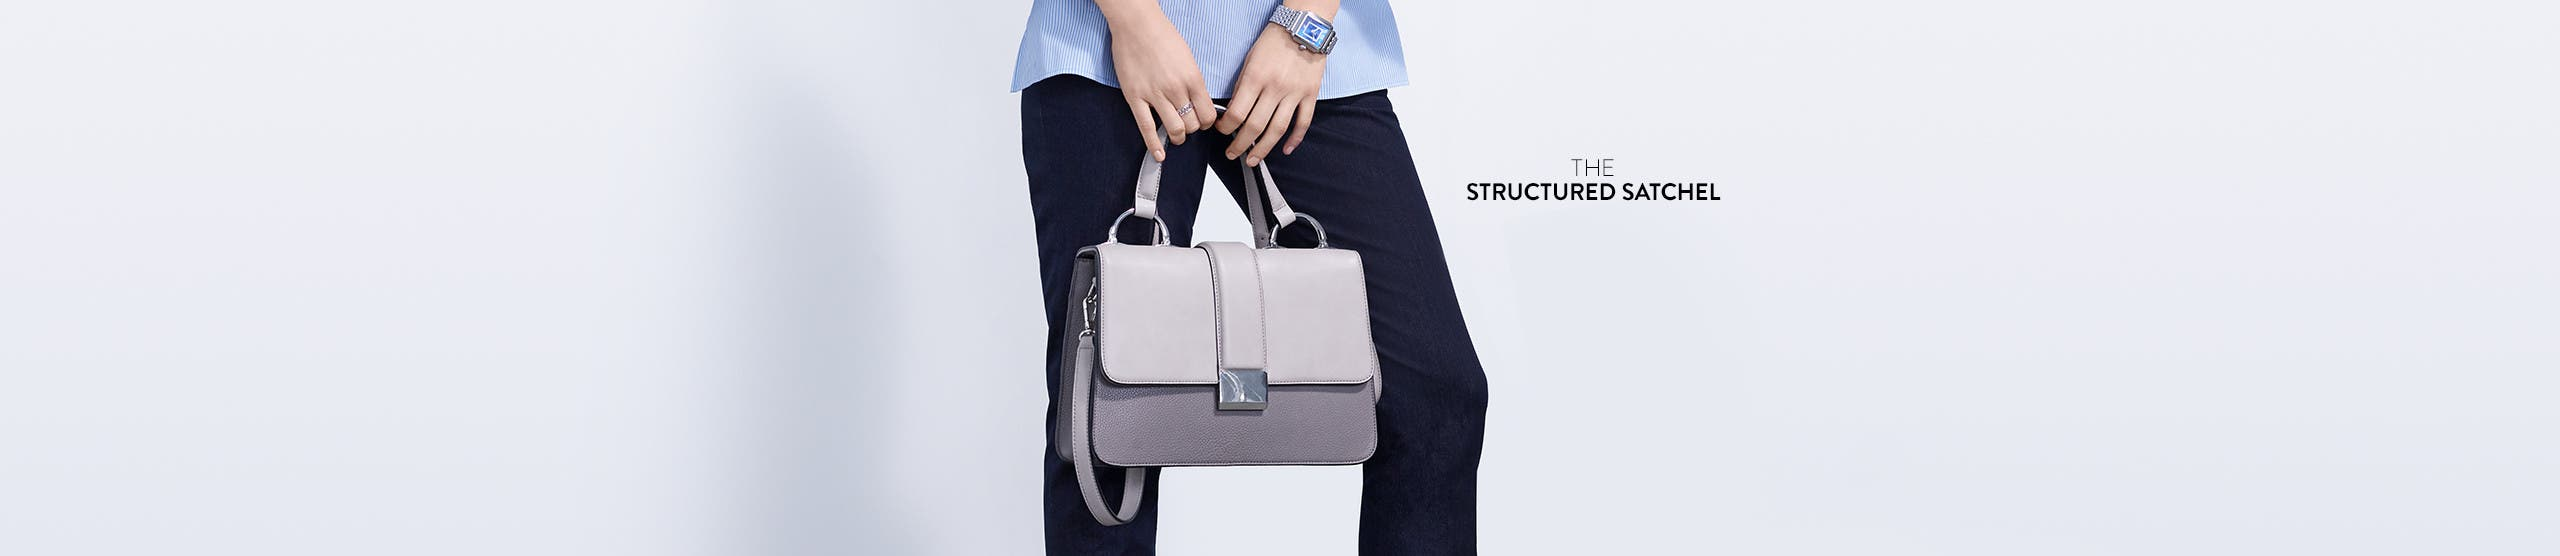 The structured satchel.